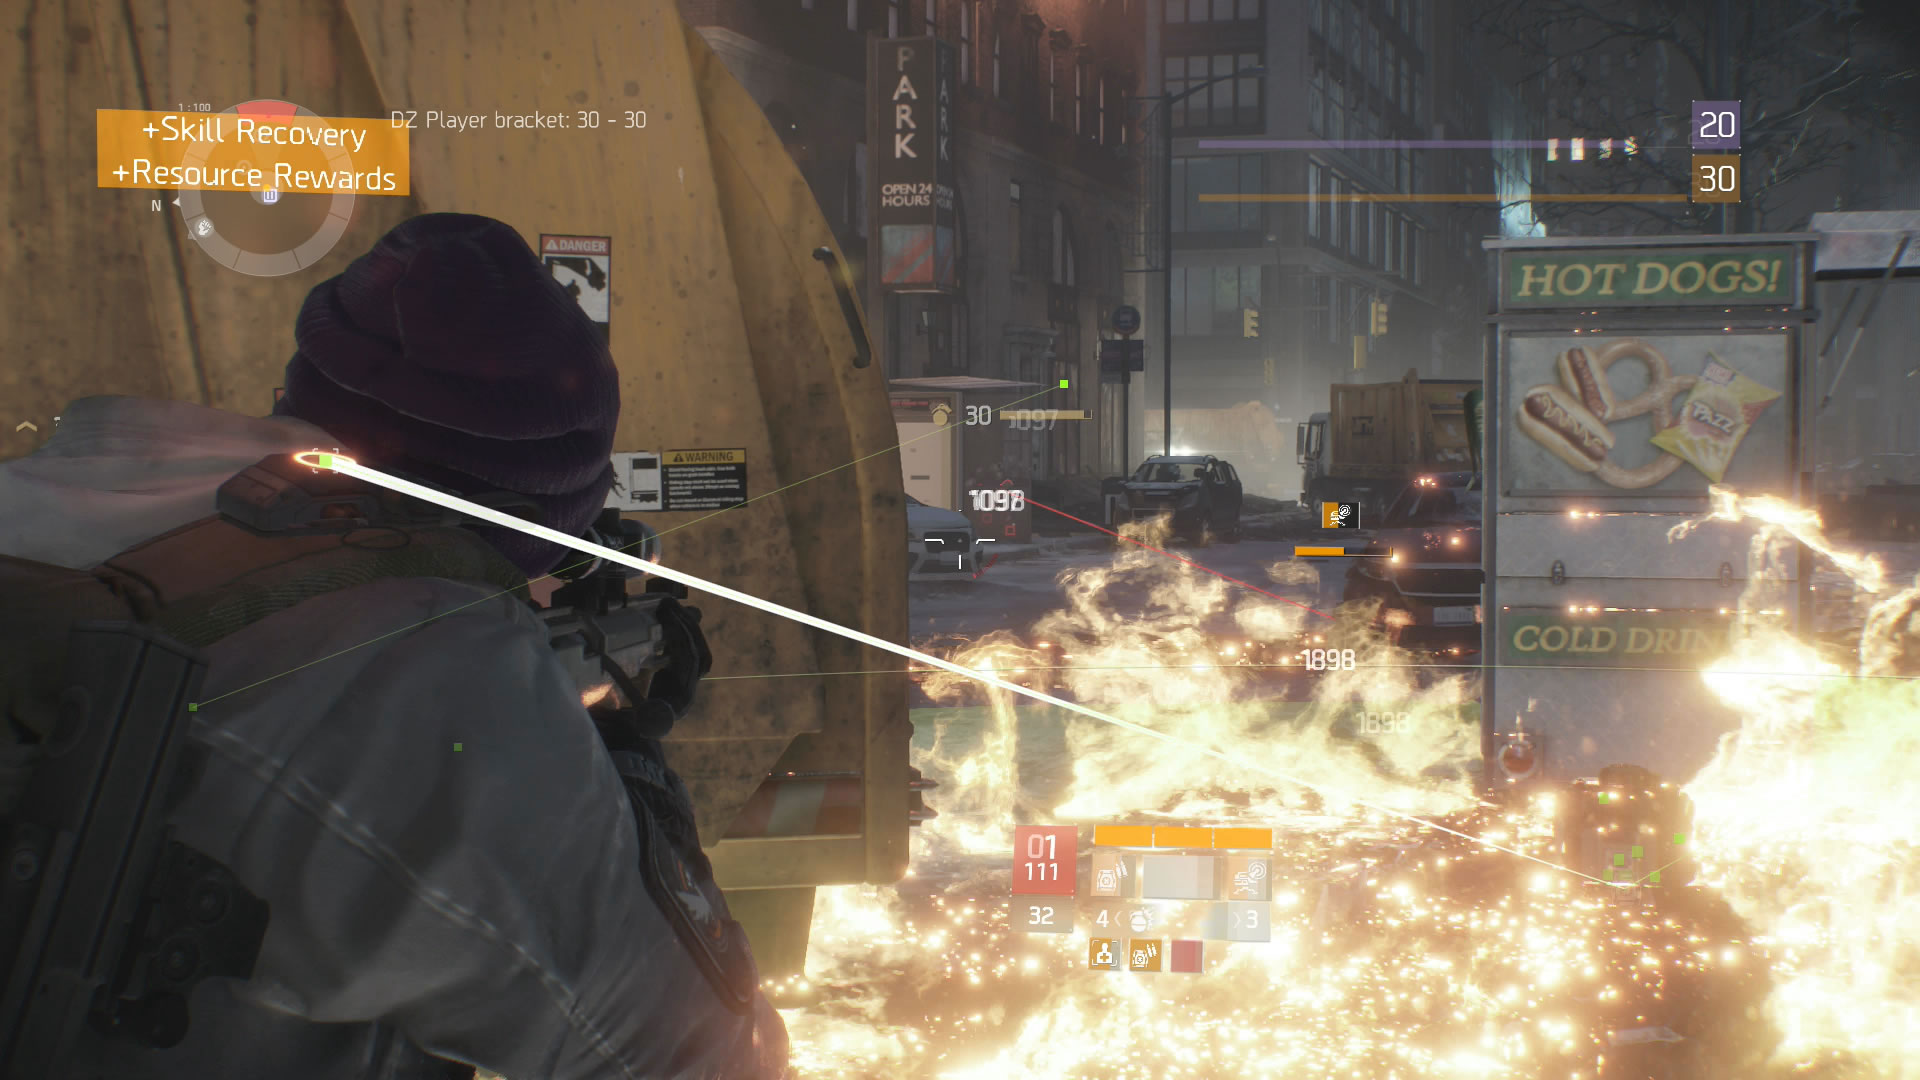 Sniping fools in the Dark Zone. The cross-hairs make head shots easy.